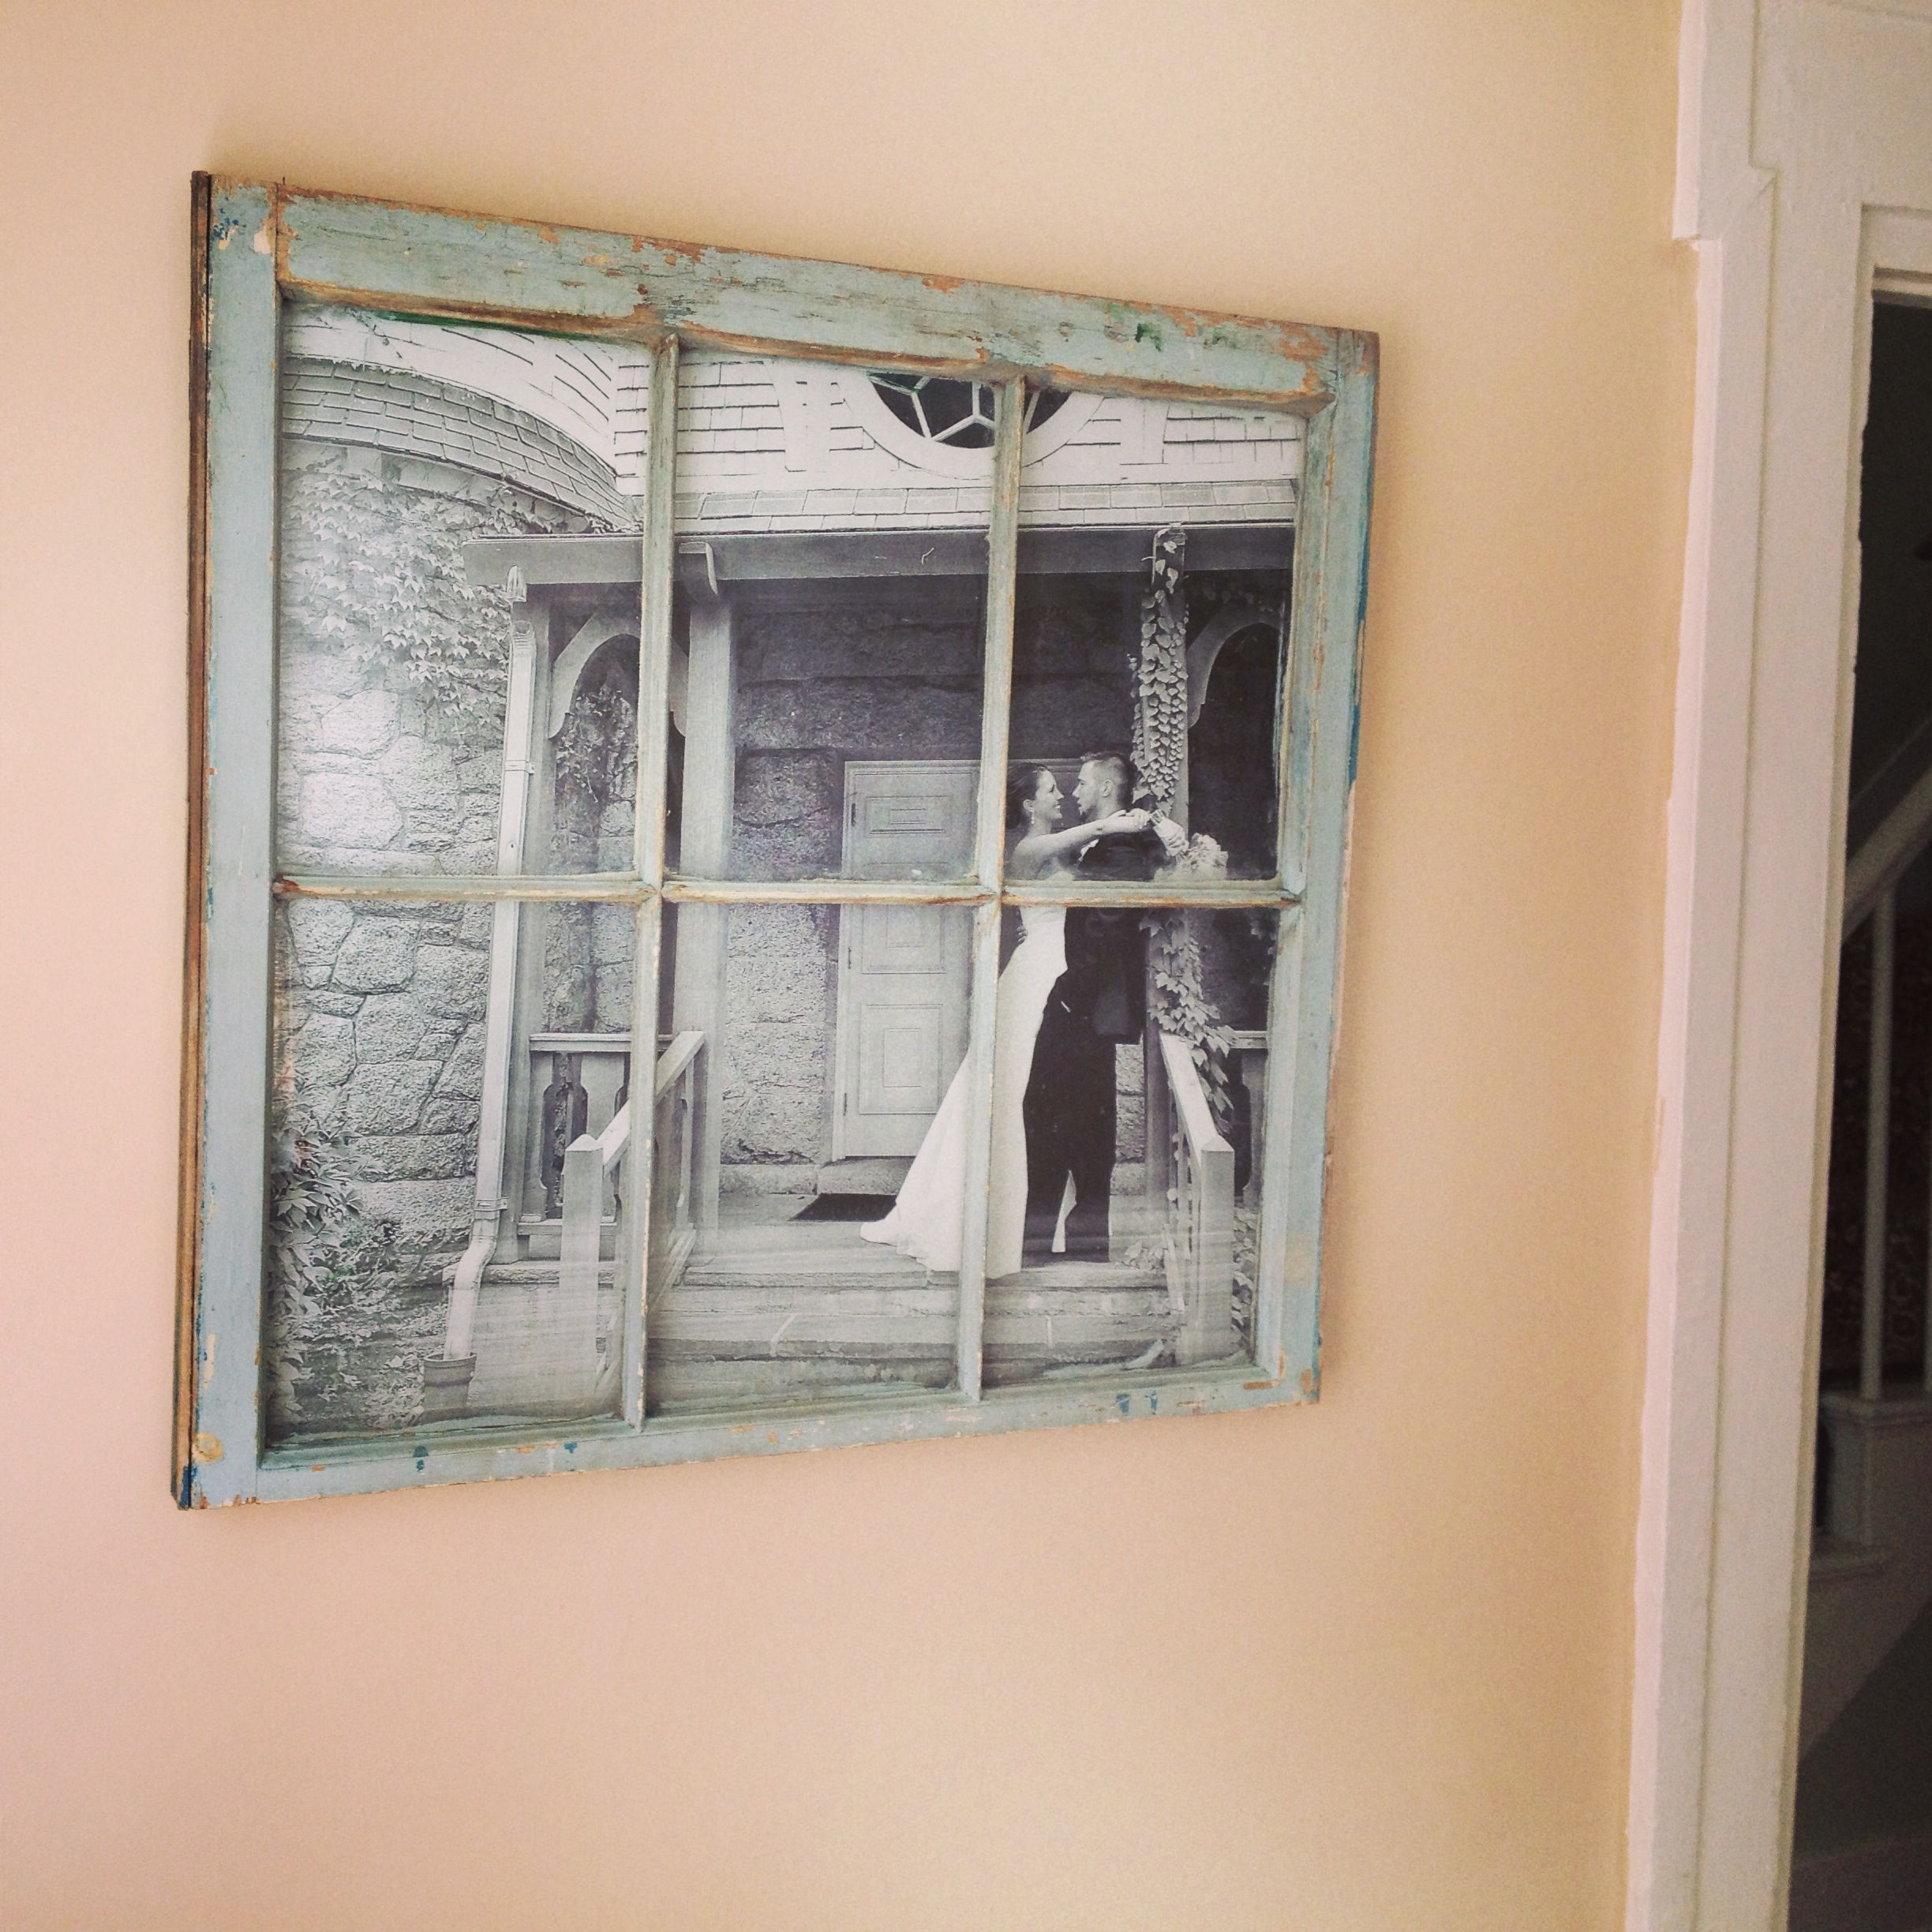 Window Frame Wall Art $10 antique flea market widow pane and a $4 black and white